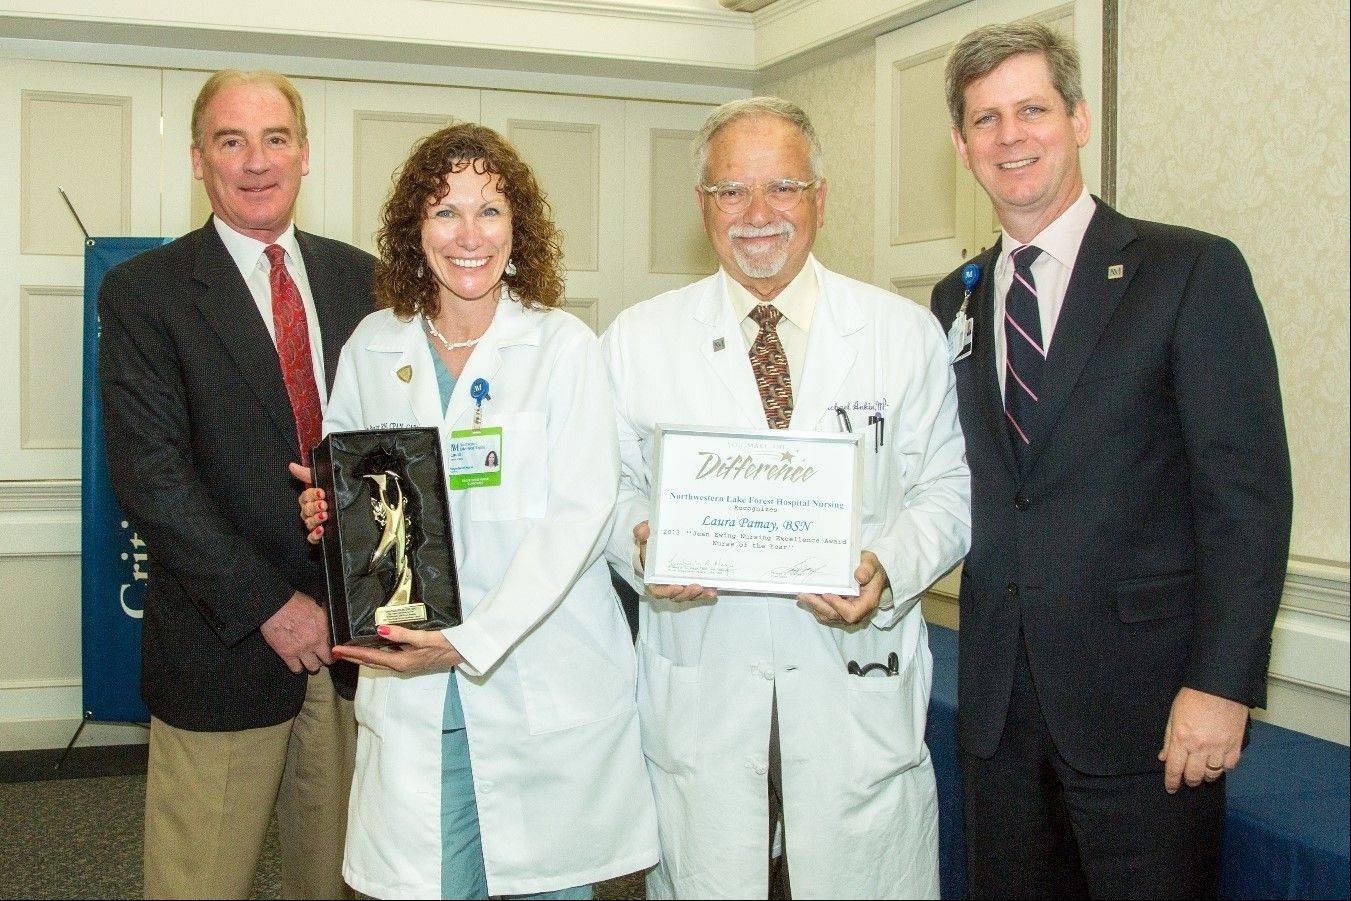 From left, Kim Sobinsky, MD, president of Northwestern Lake Forest Hospital medical staff; Laura Pamay, BSN, RN; Michael Ankin, MD, vice president, Medical Affairs and chief medical officer; and Thomas J. McAfee, president of Northwestern Lake Forest Hospital, as Pamay receives the 2013 Jean Ewing Nursing Excellence Award.